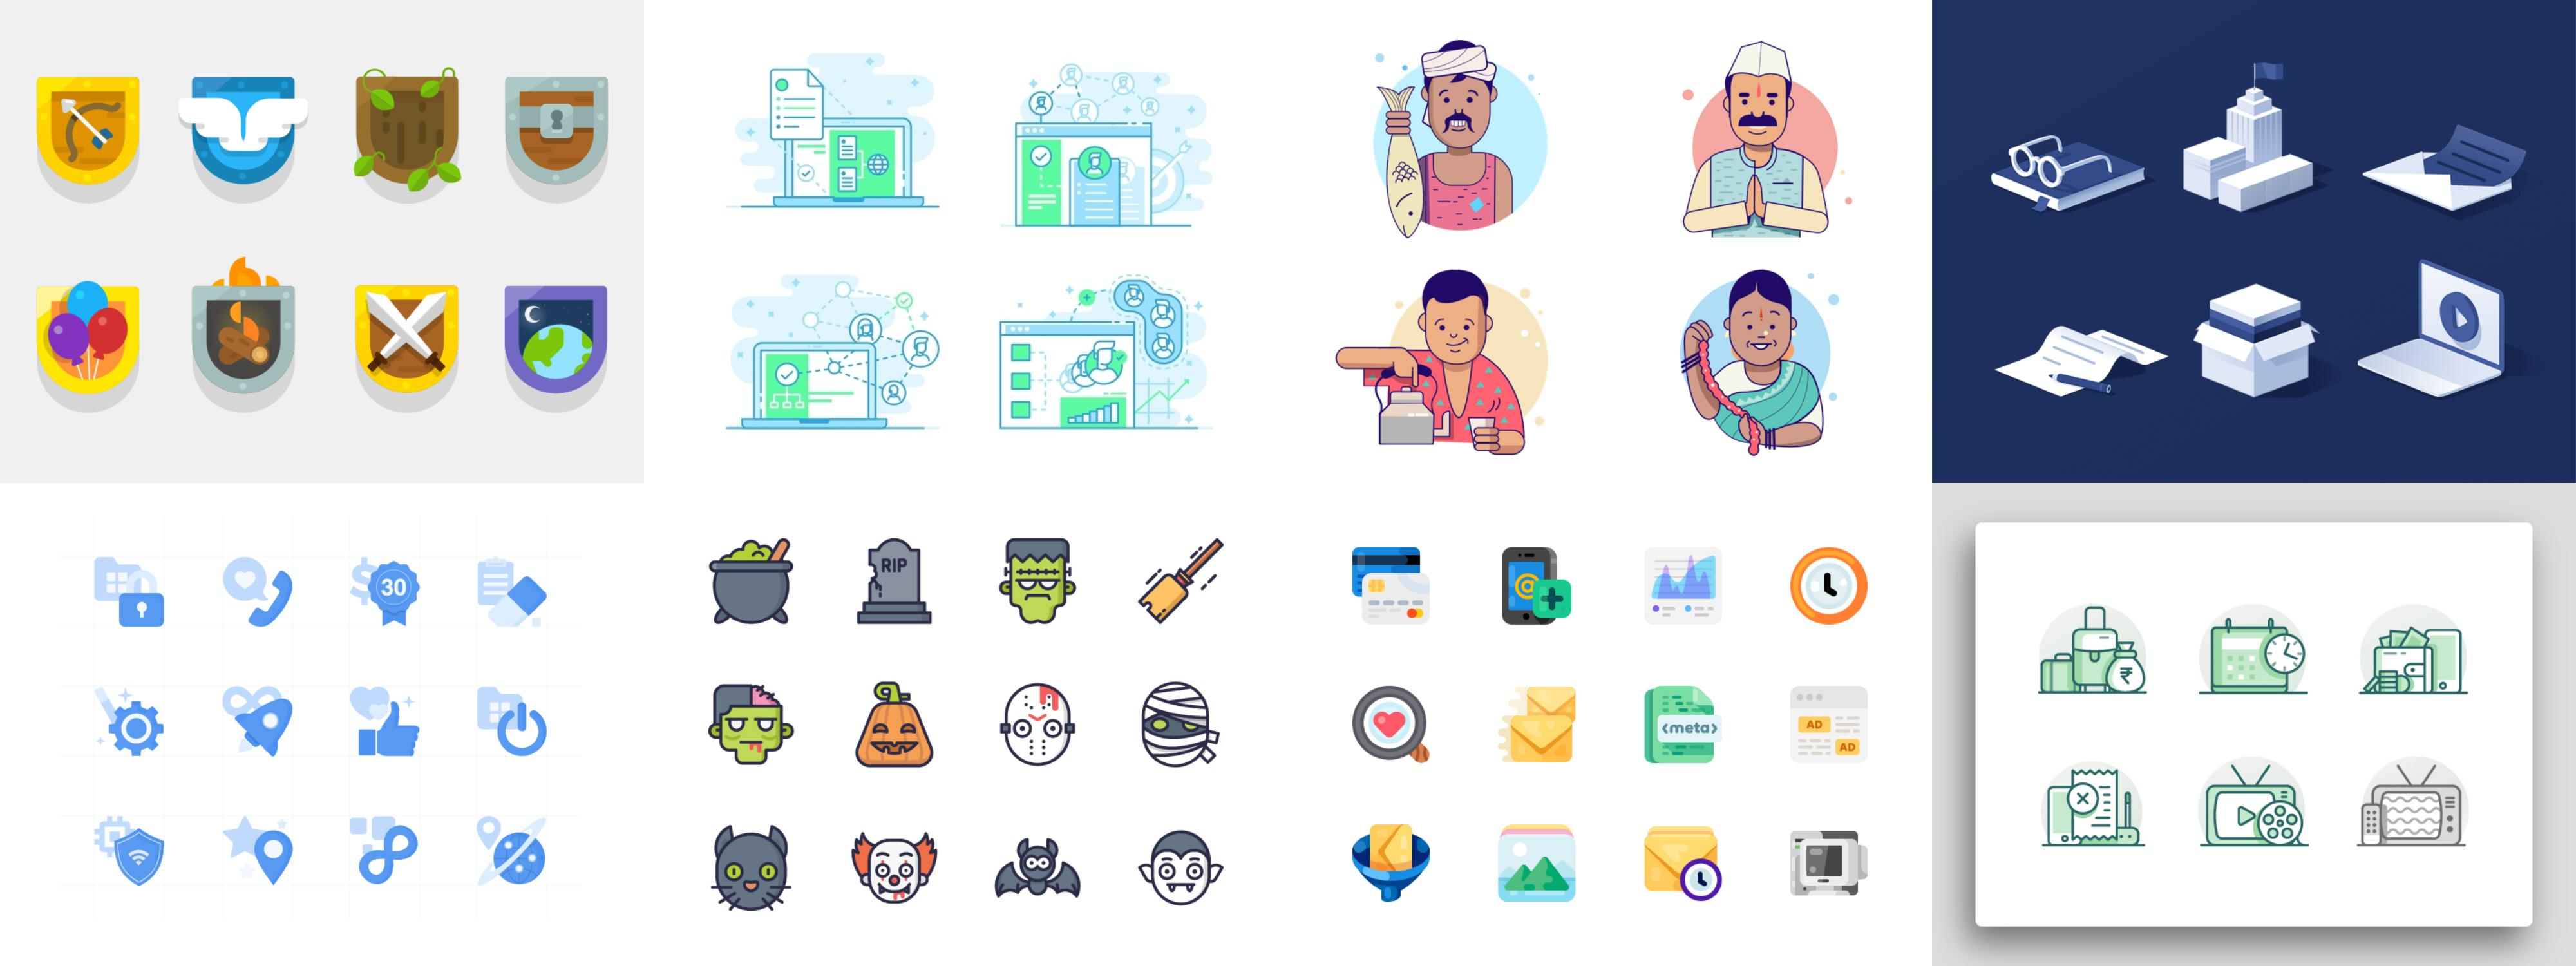 icon design inspiration week 20 iconscout